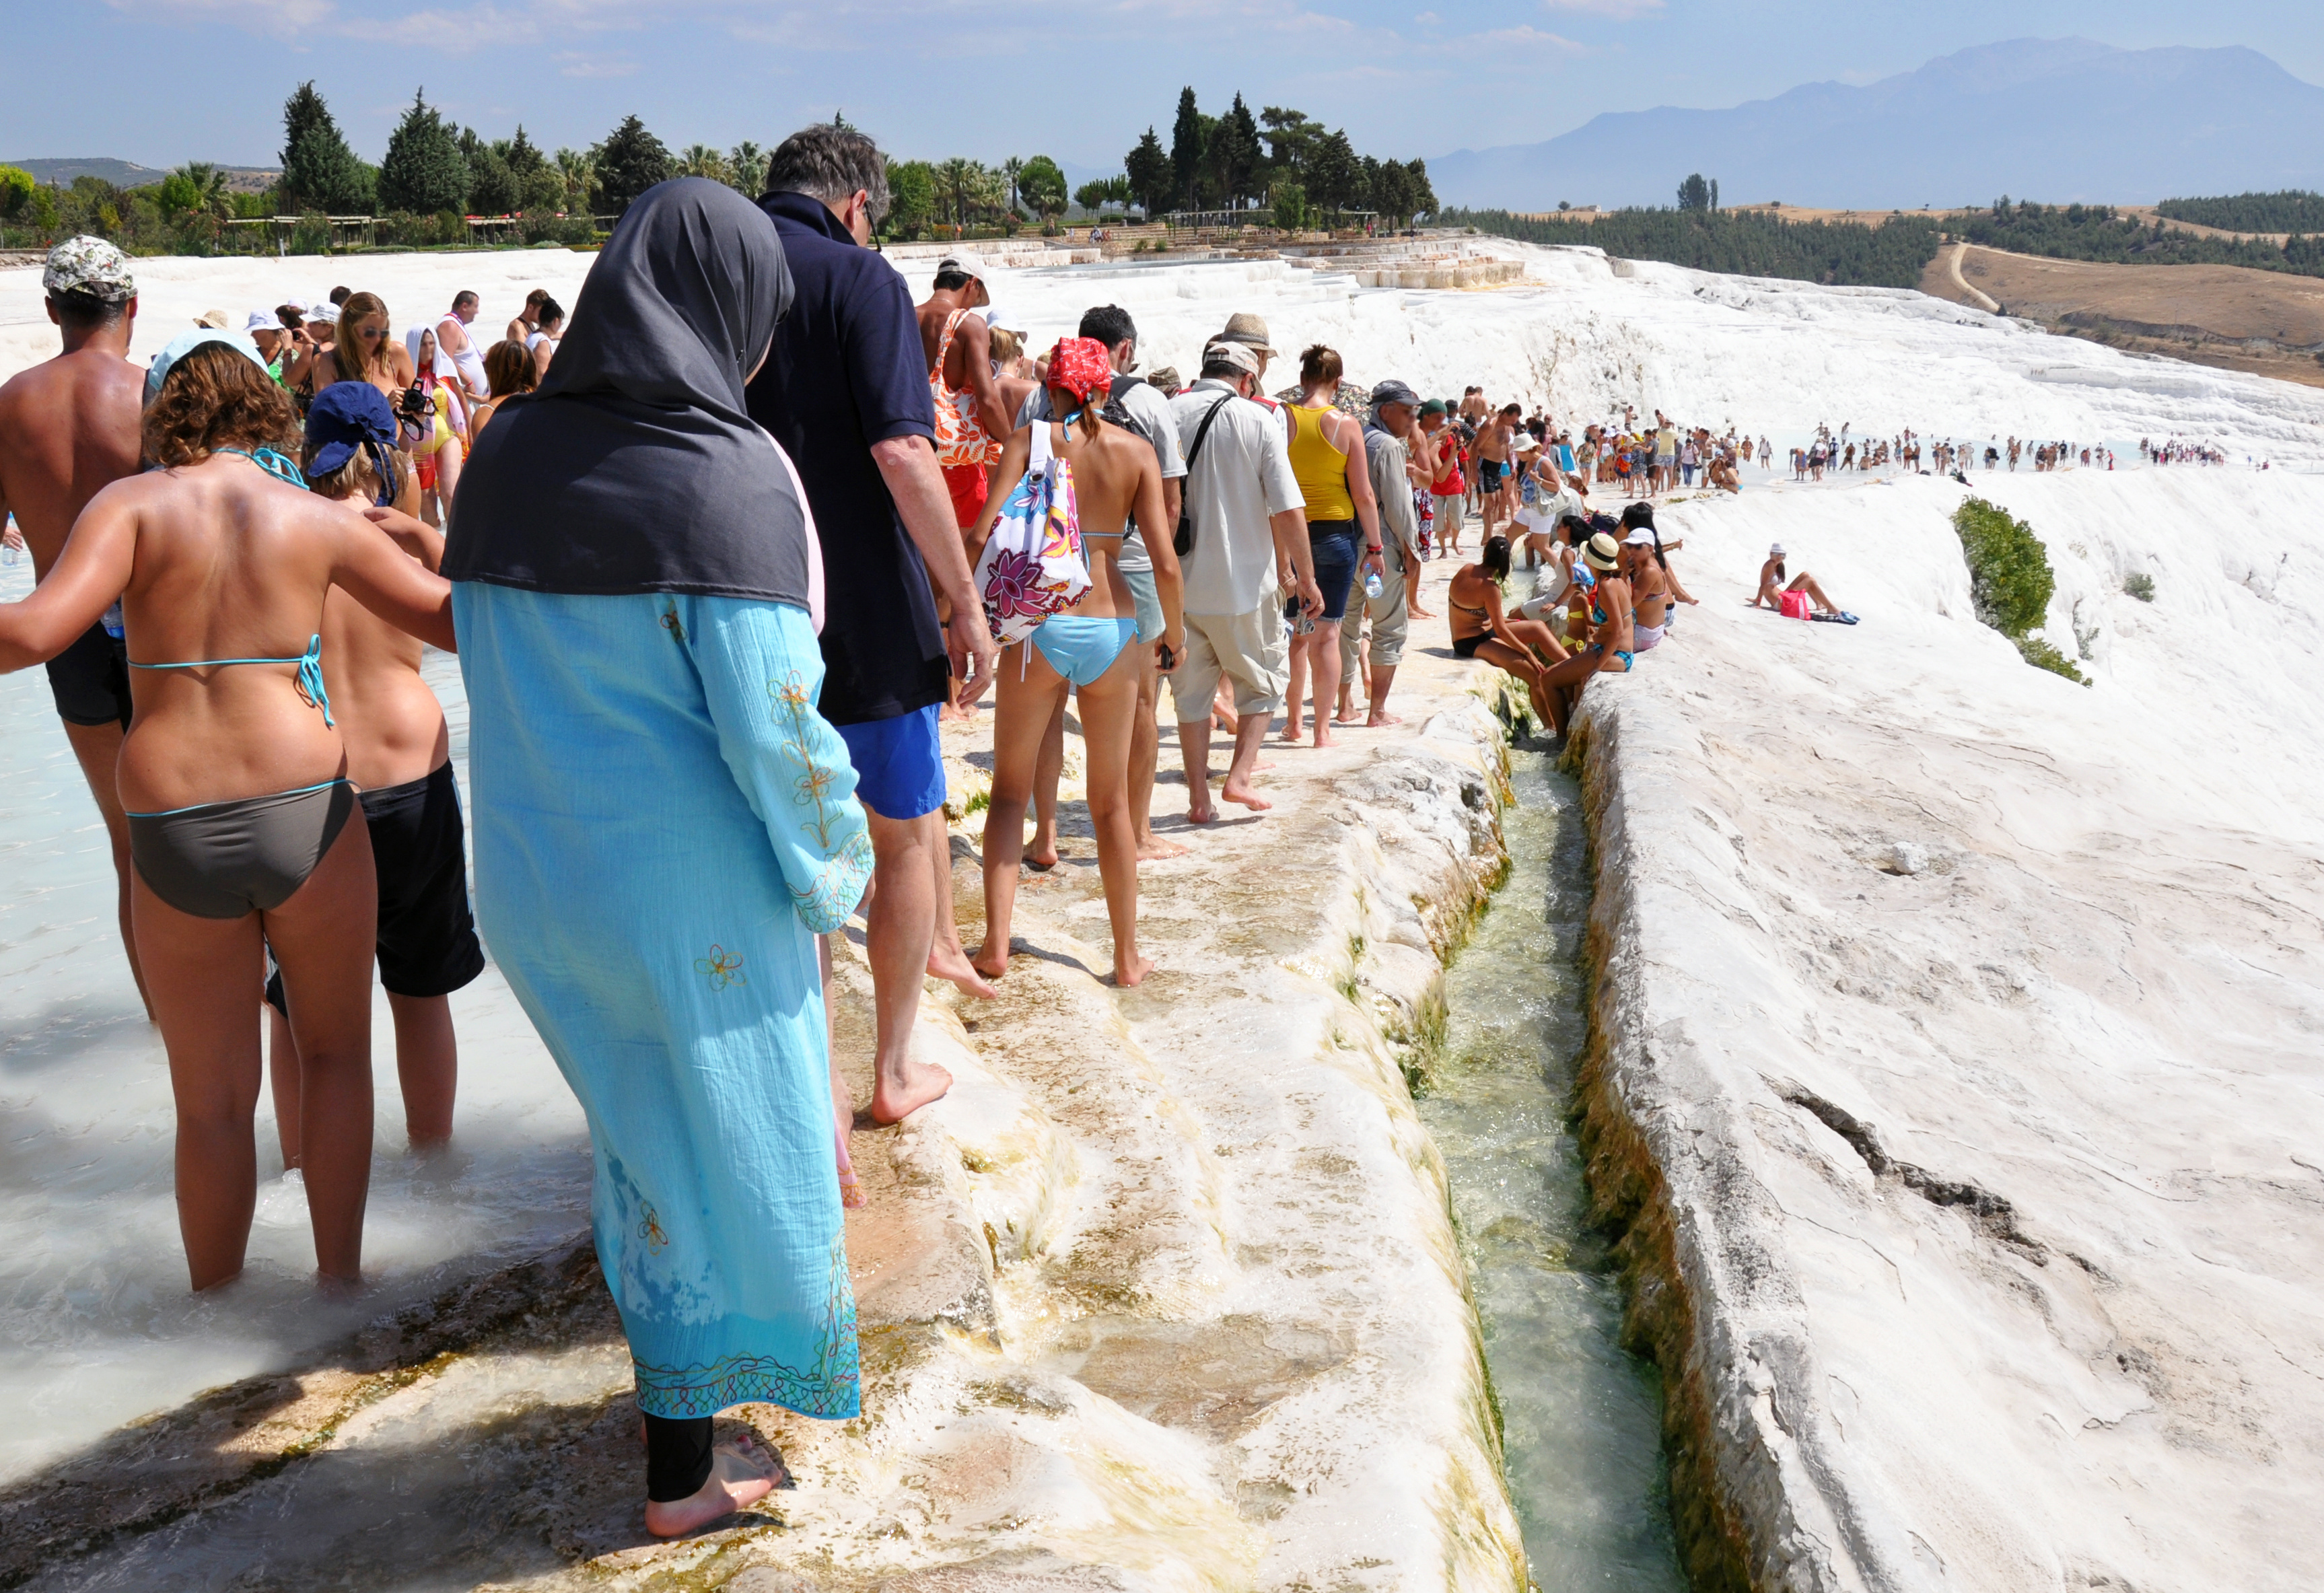 Pamukkale, Turkey - July 20, 2011: Tourists on the travertines